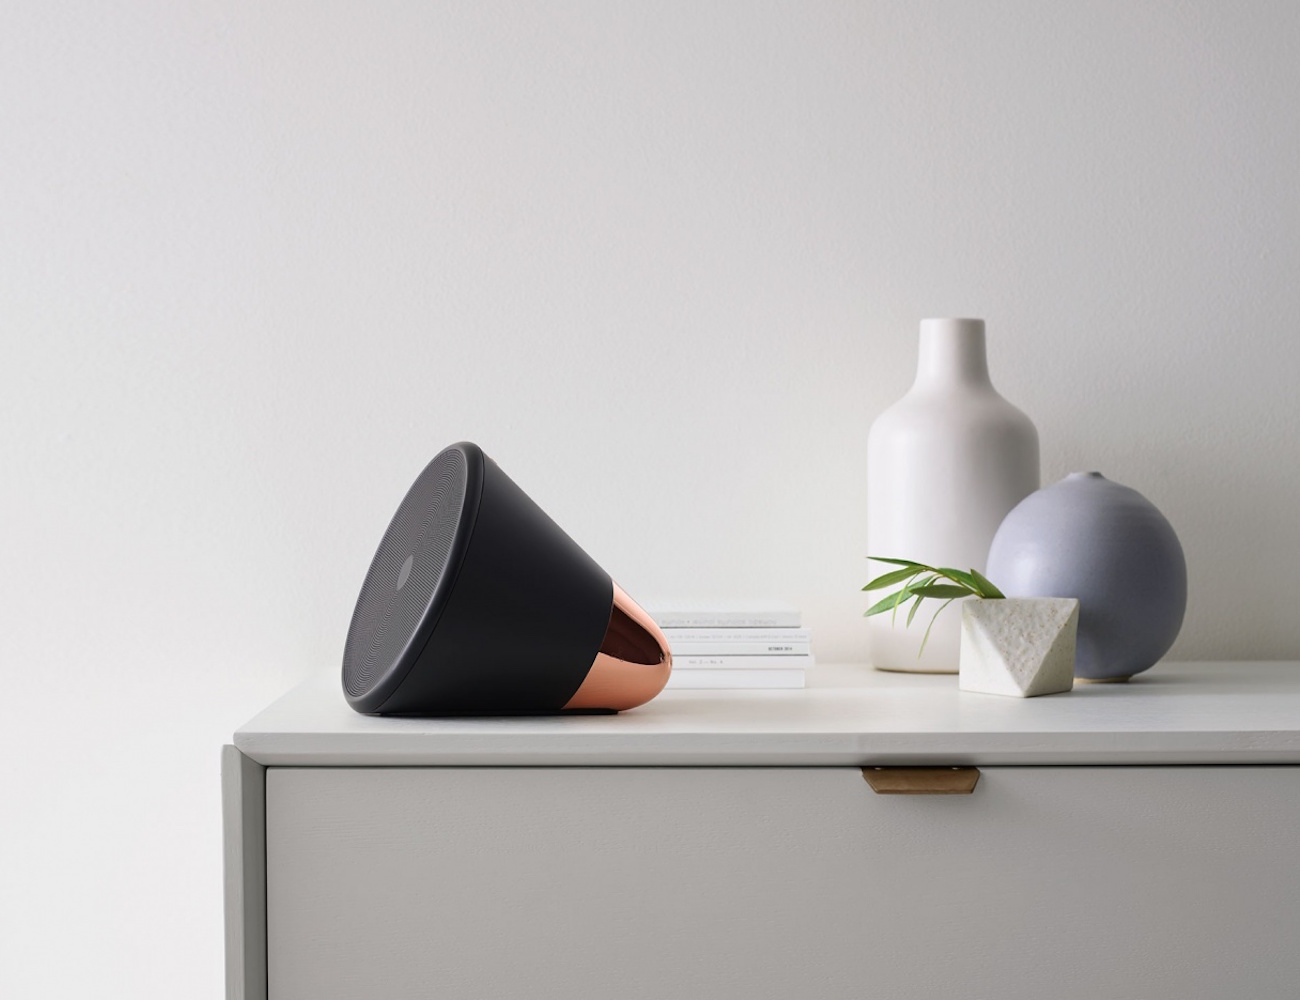 Aether Cone – The Thinking Music Player